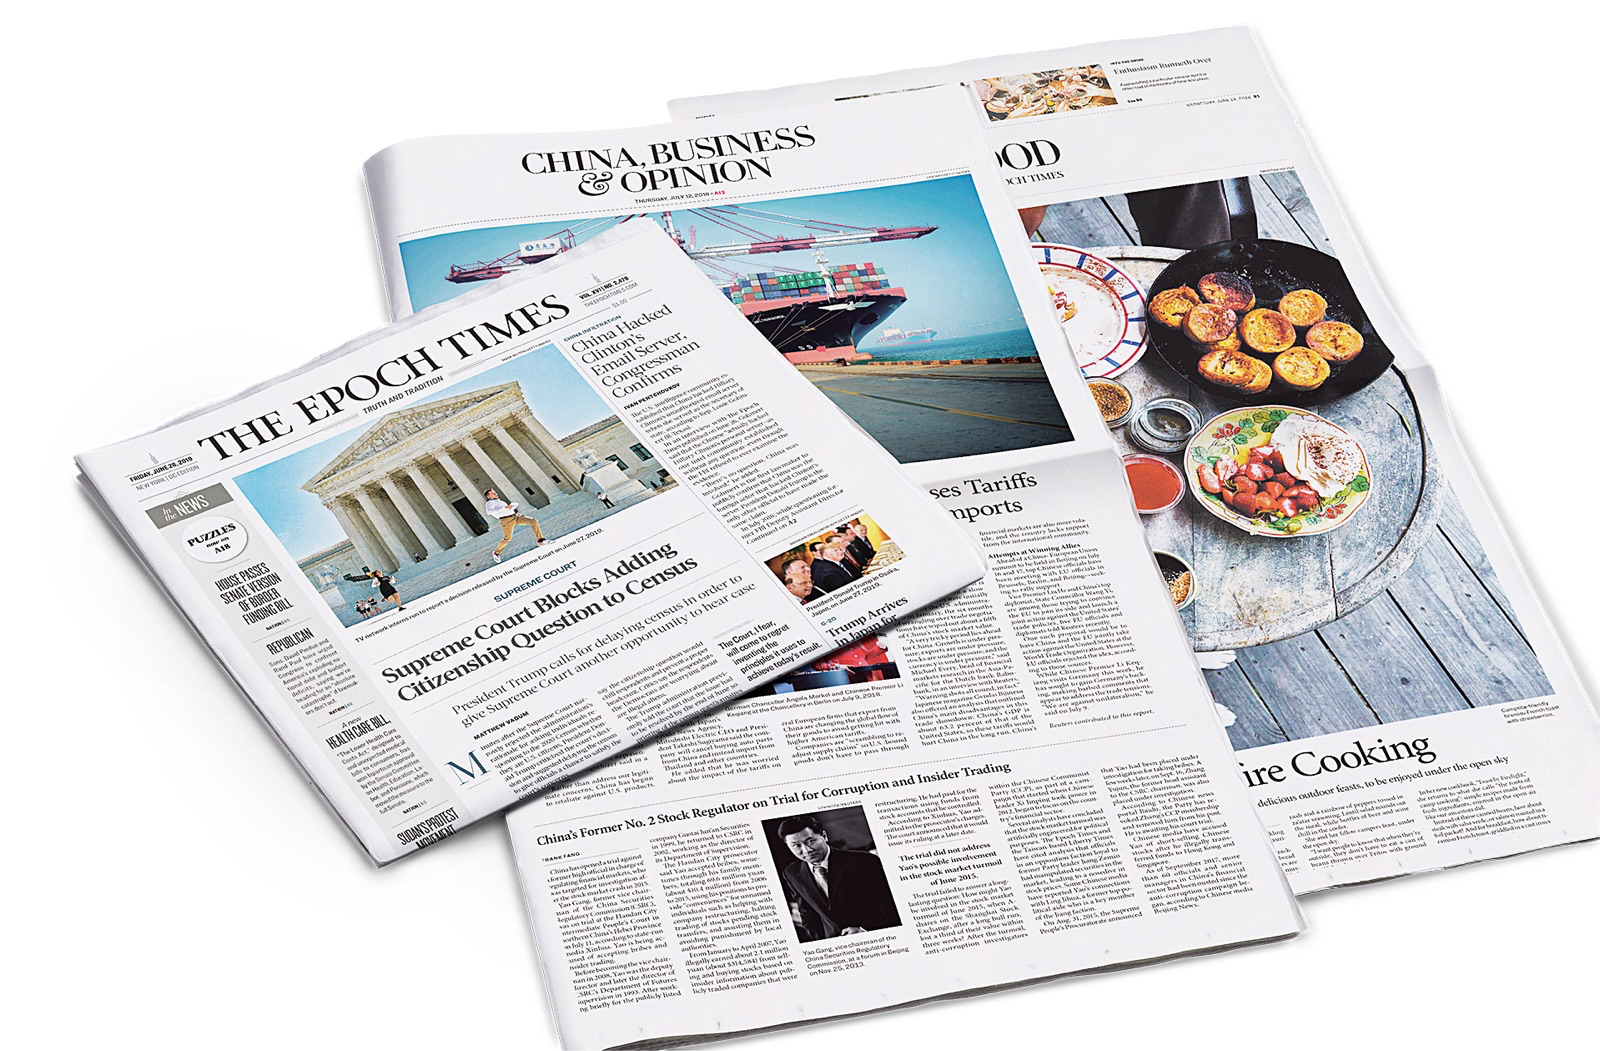 The Epoch Times Receives Outpouring of Support After NBC, MSNBC Hit Pieces